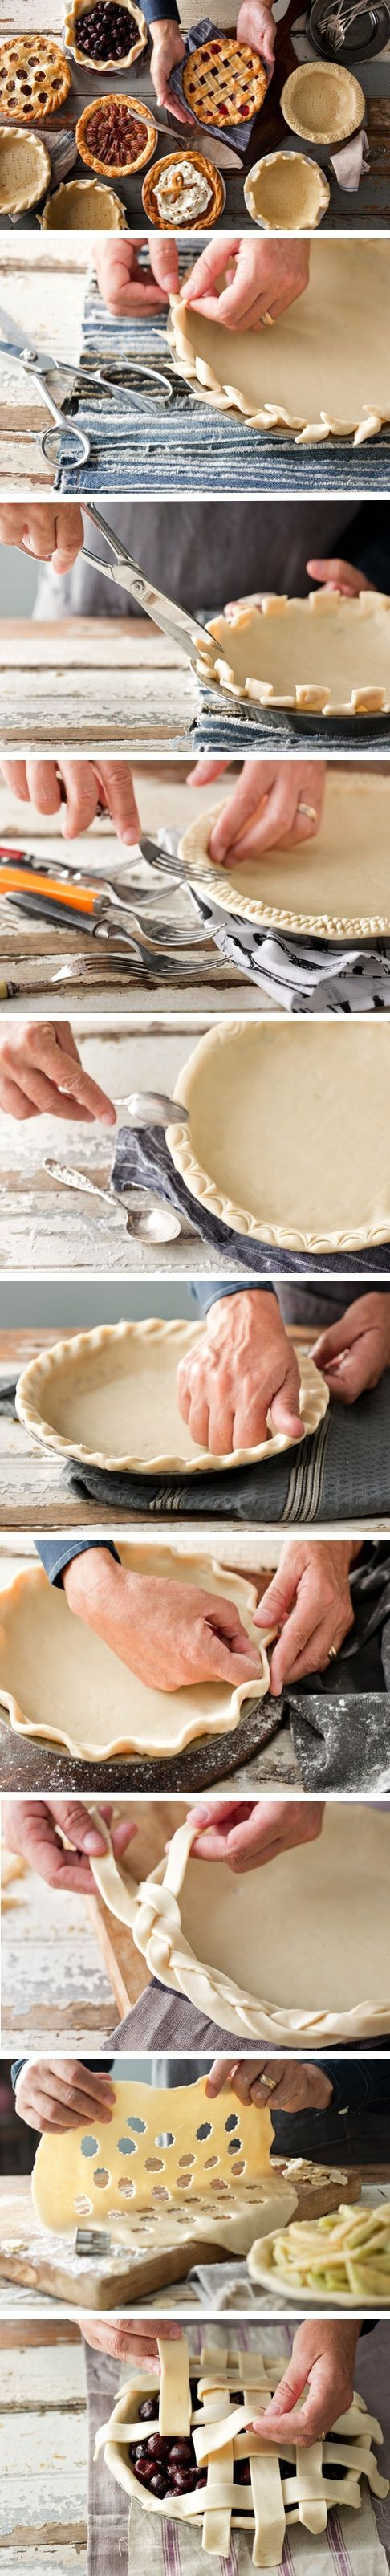 9 Pie crust how-tos and a 120 second video for 20 variations | Relish.com